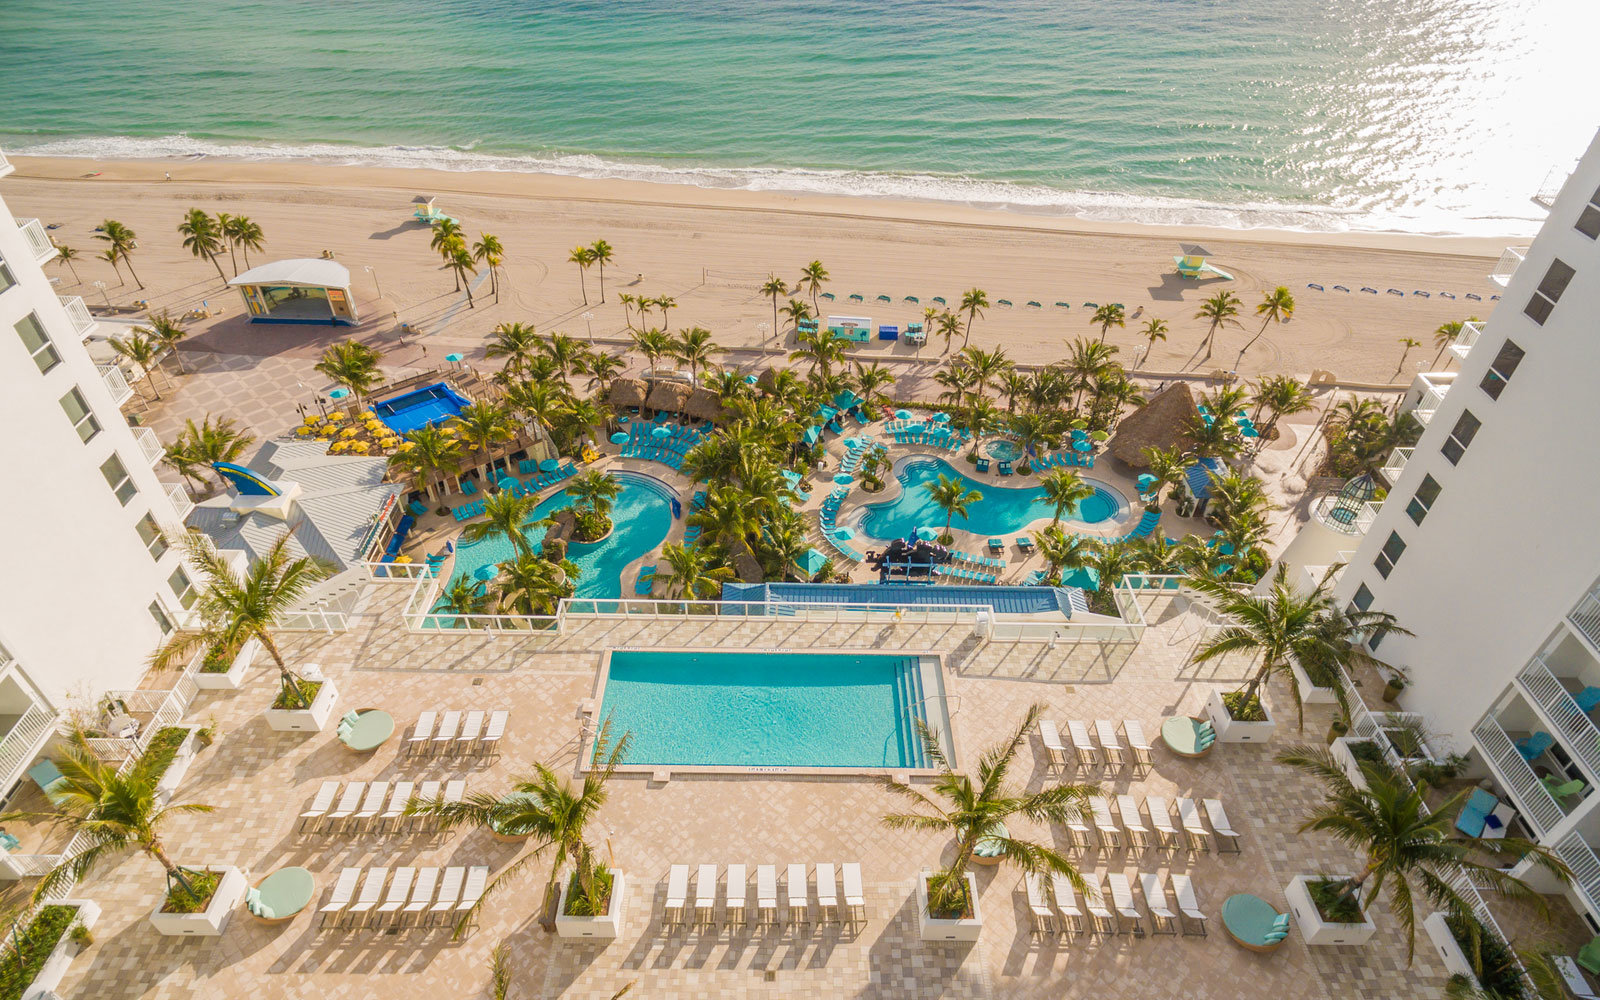 Save 30% off Stays at the Margaritaville Hollywood Beach Resort